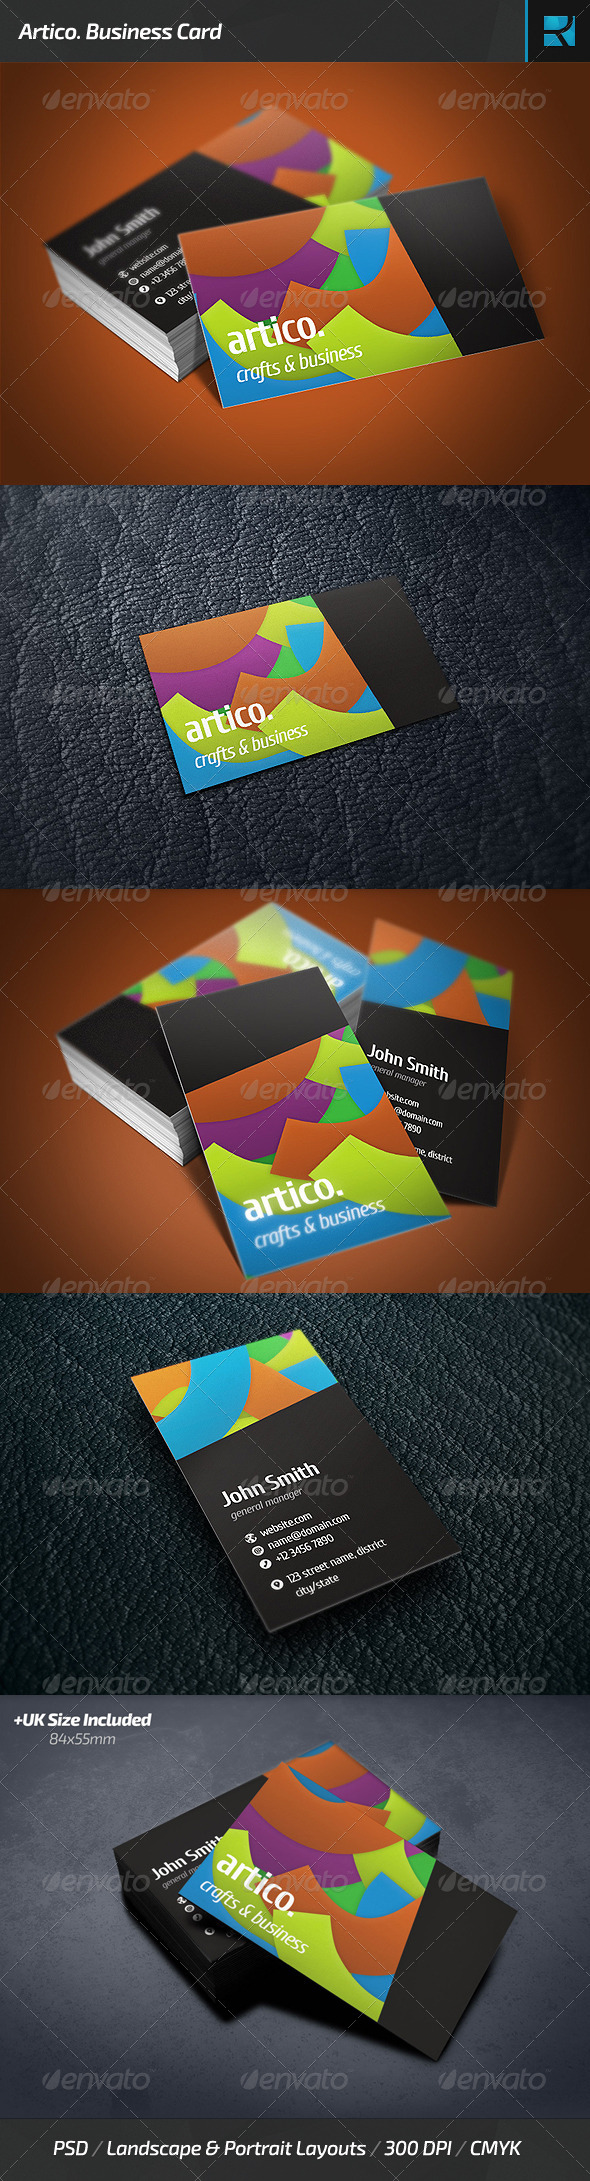 Artico. Business Card - Creative Business Cards